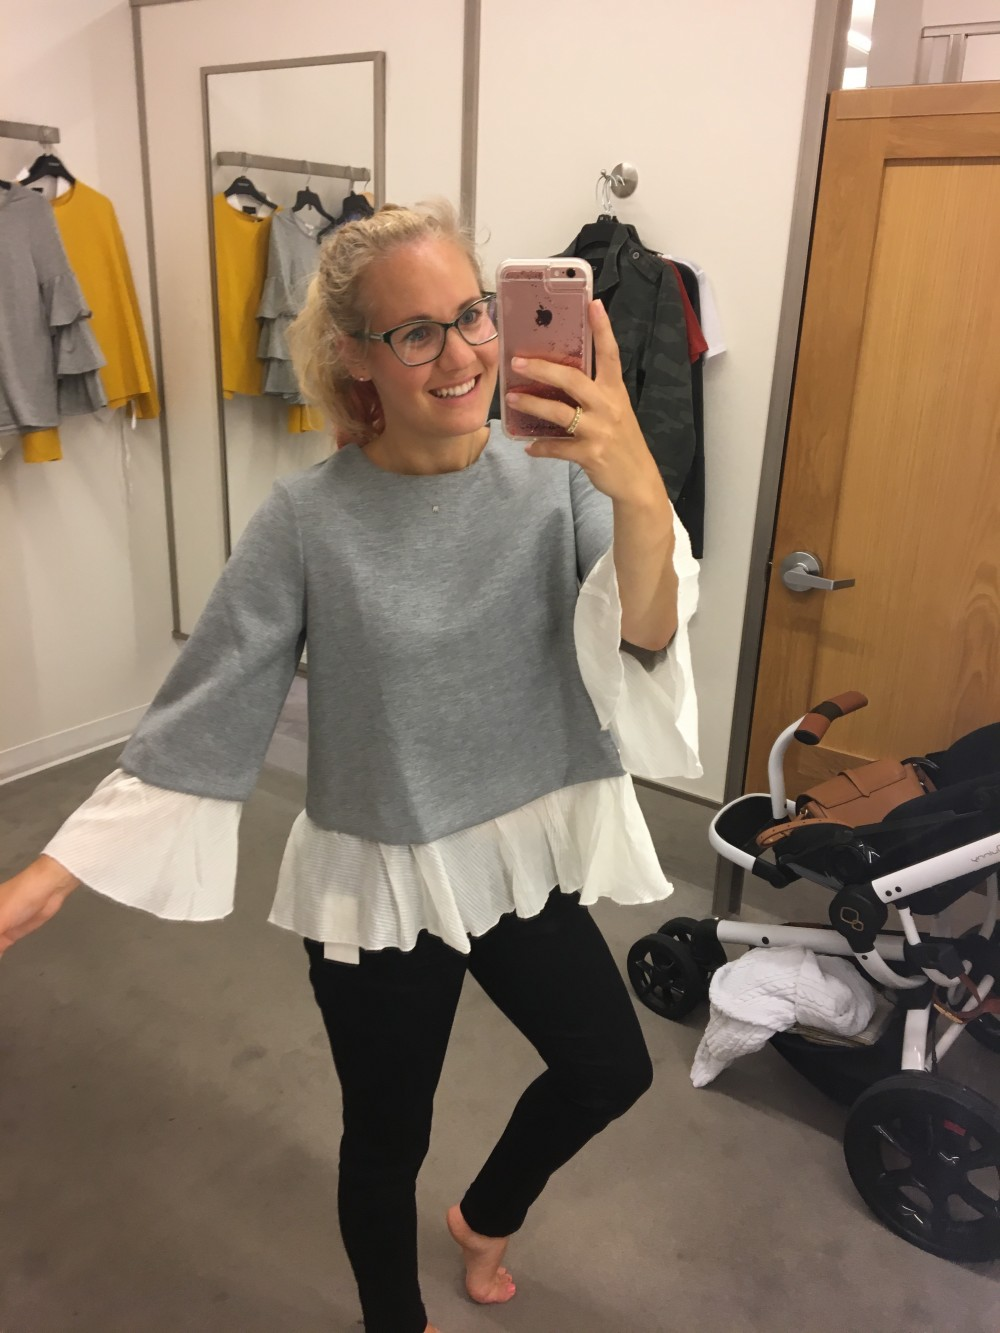 Dressing Room Diaries- Nordstrom Anniversary Sale 2017-Fall Tops-Blogger Picks for the Nordstrom Anniversary Sale-Nordstrom Sale-Fall Style-Fall Fashion 2017-Have Need Want 2